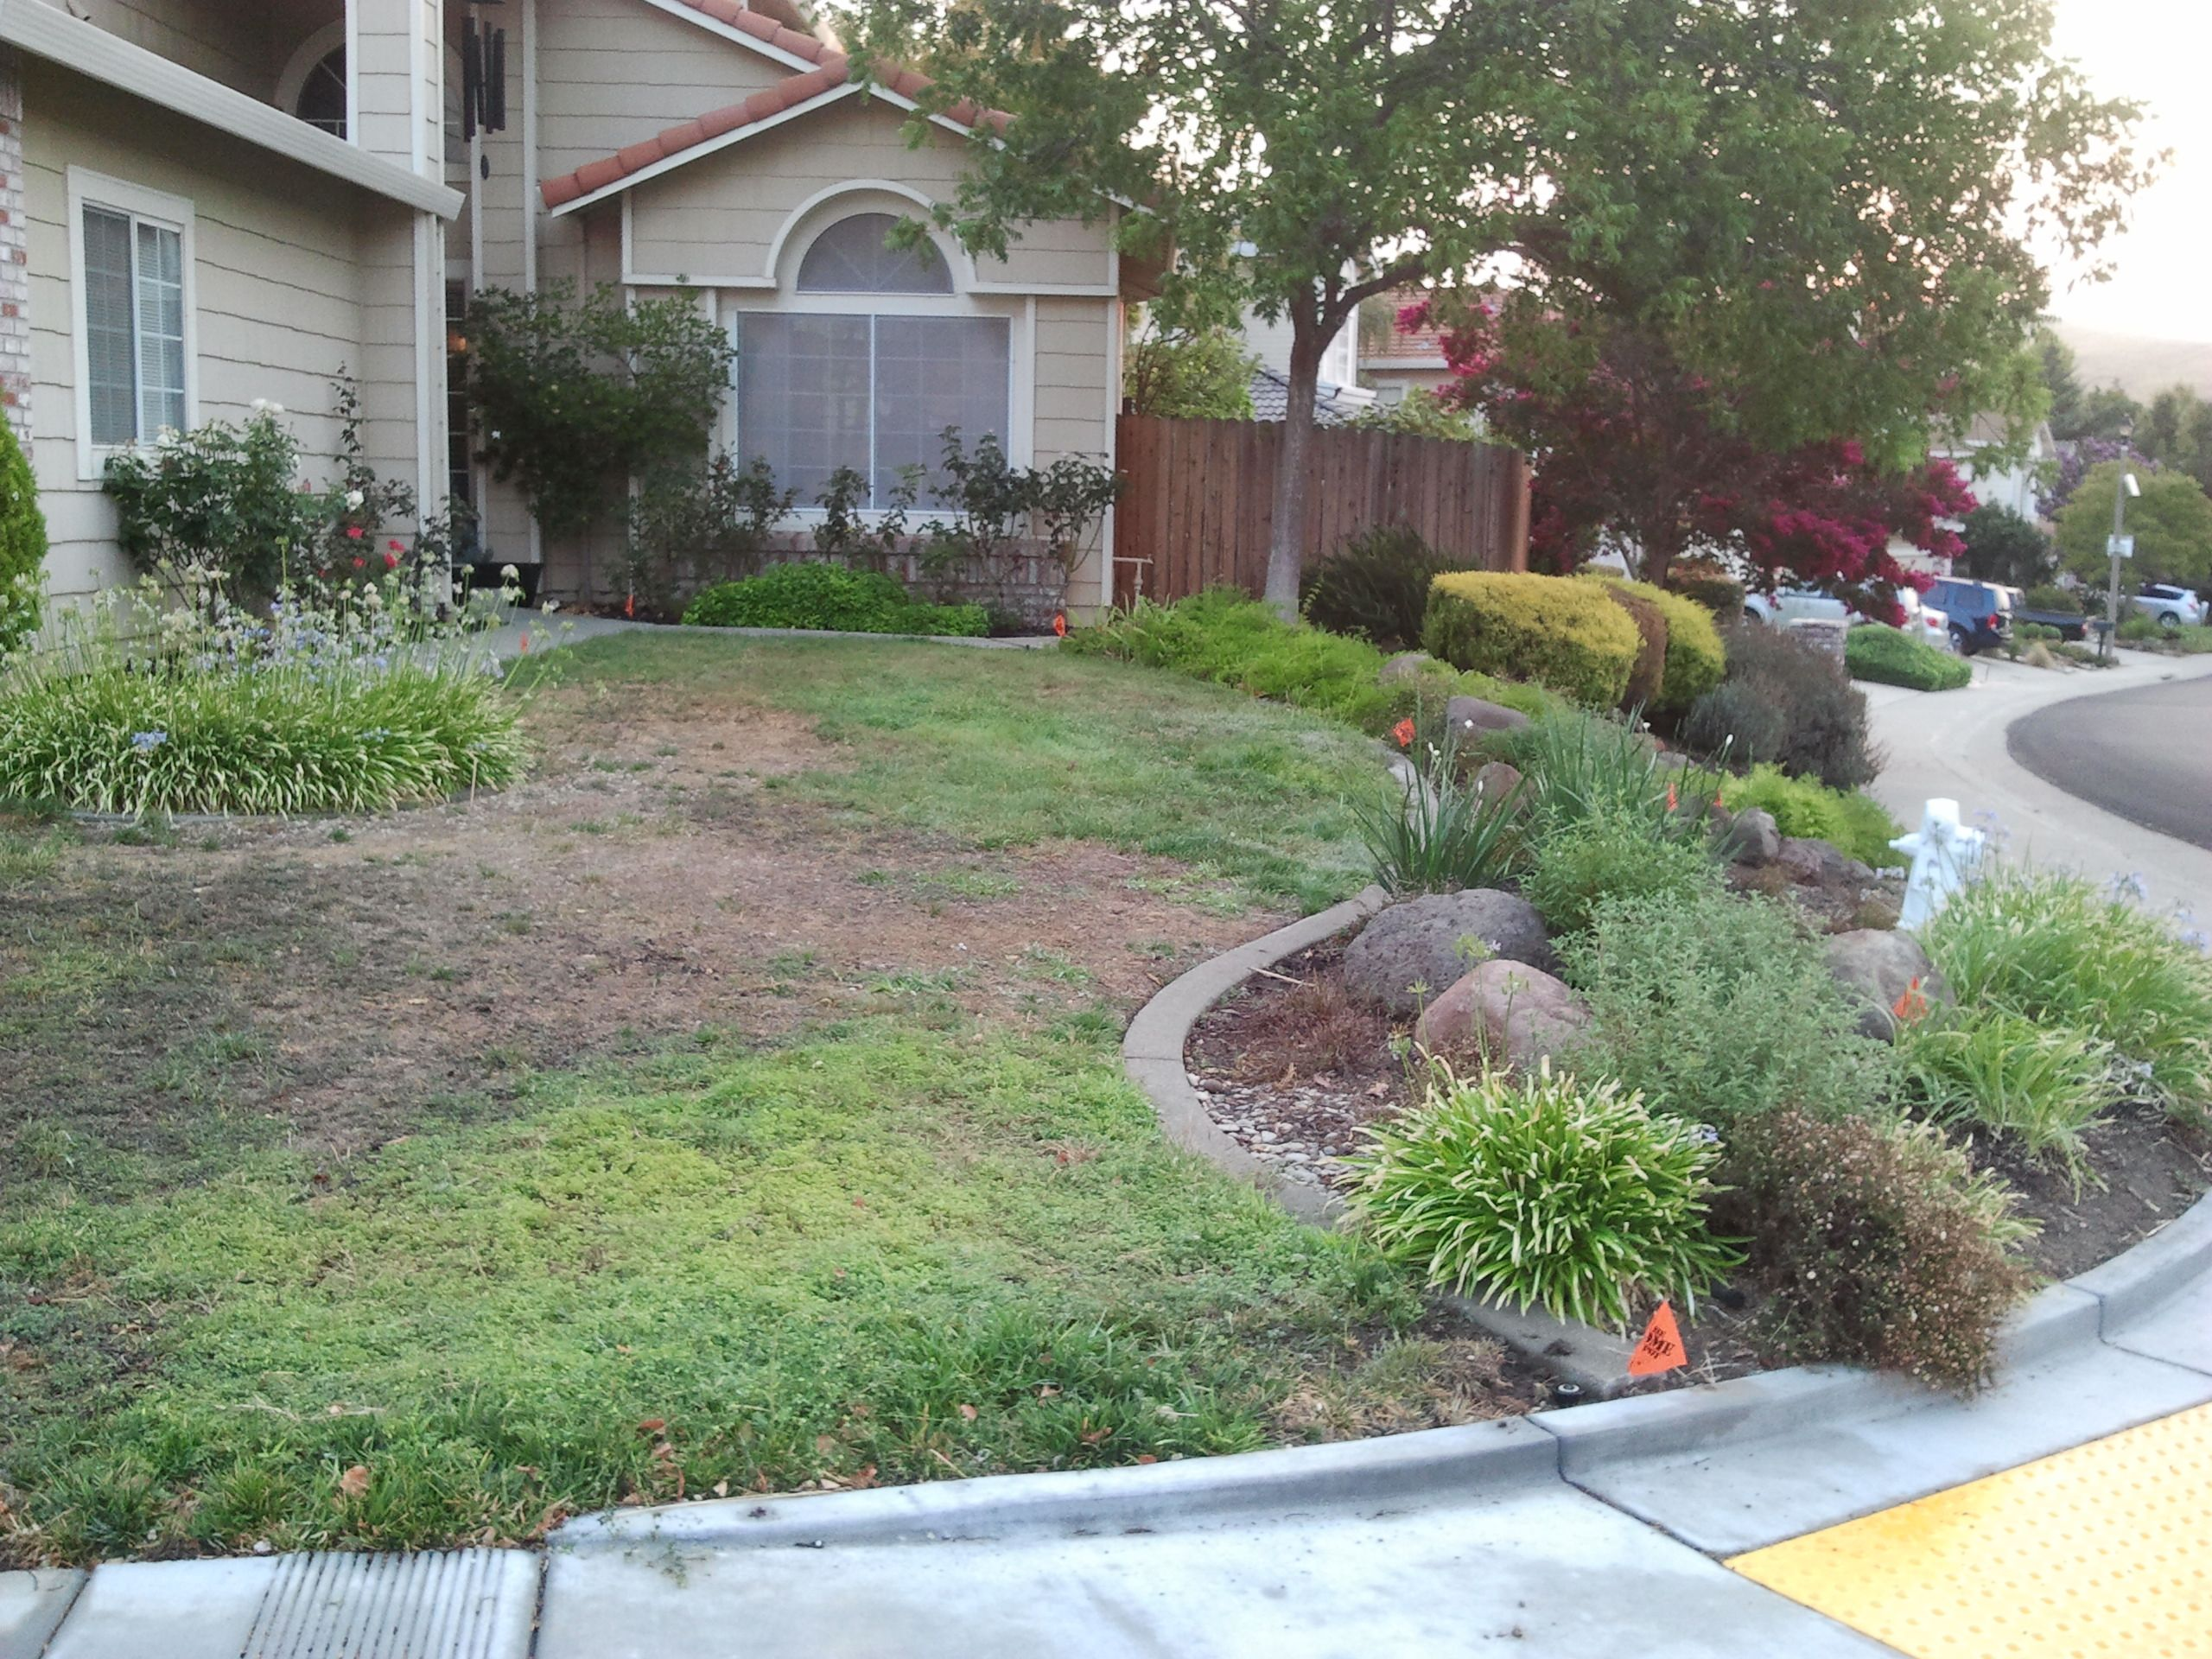 Property View 3   Narrow Deep Lawn With Berm Is Divided By Six Inch  Concrete Curb